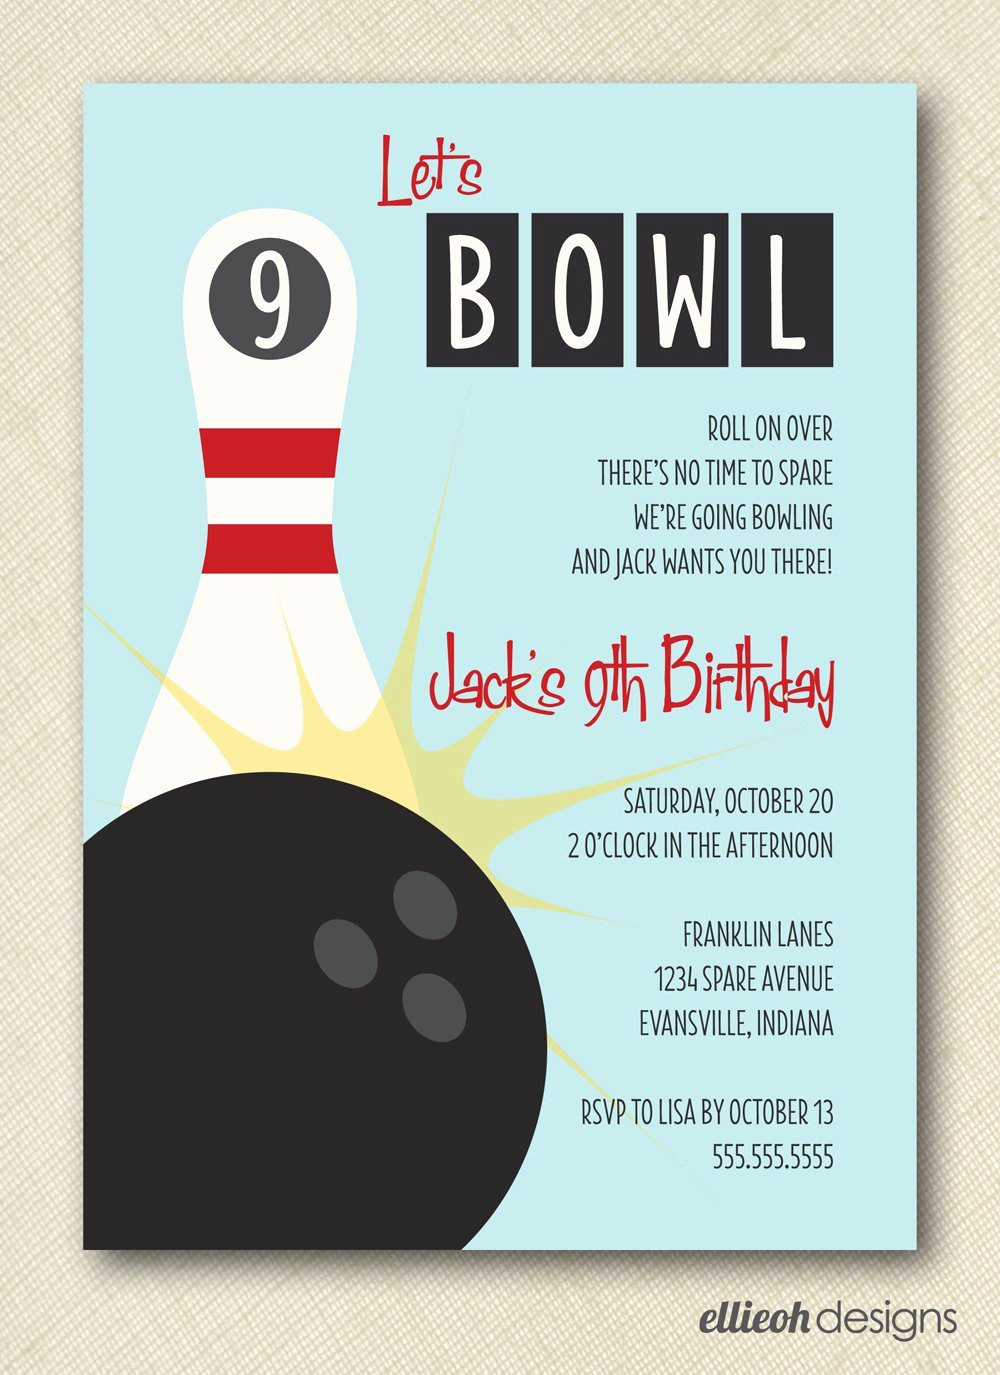 Printable Bowling Party Invitations Awesome Free Printable Bowling Party Invitation Templates